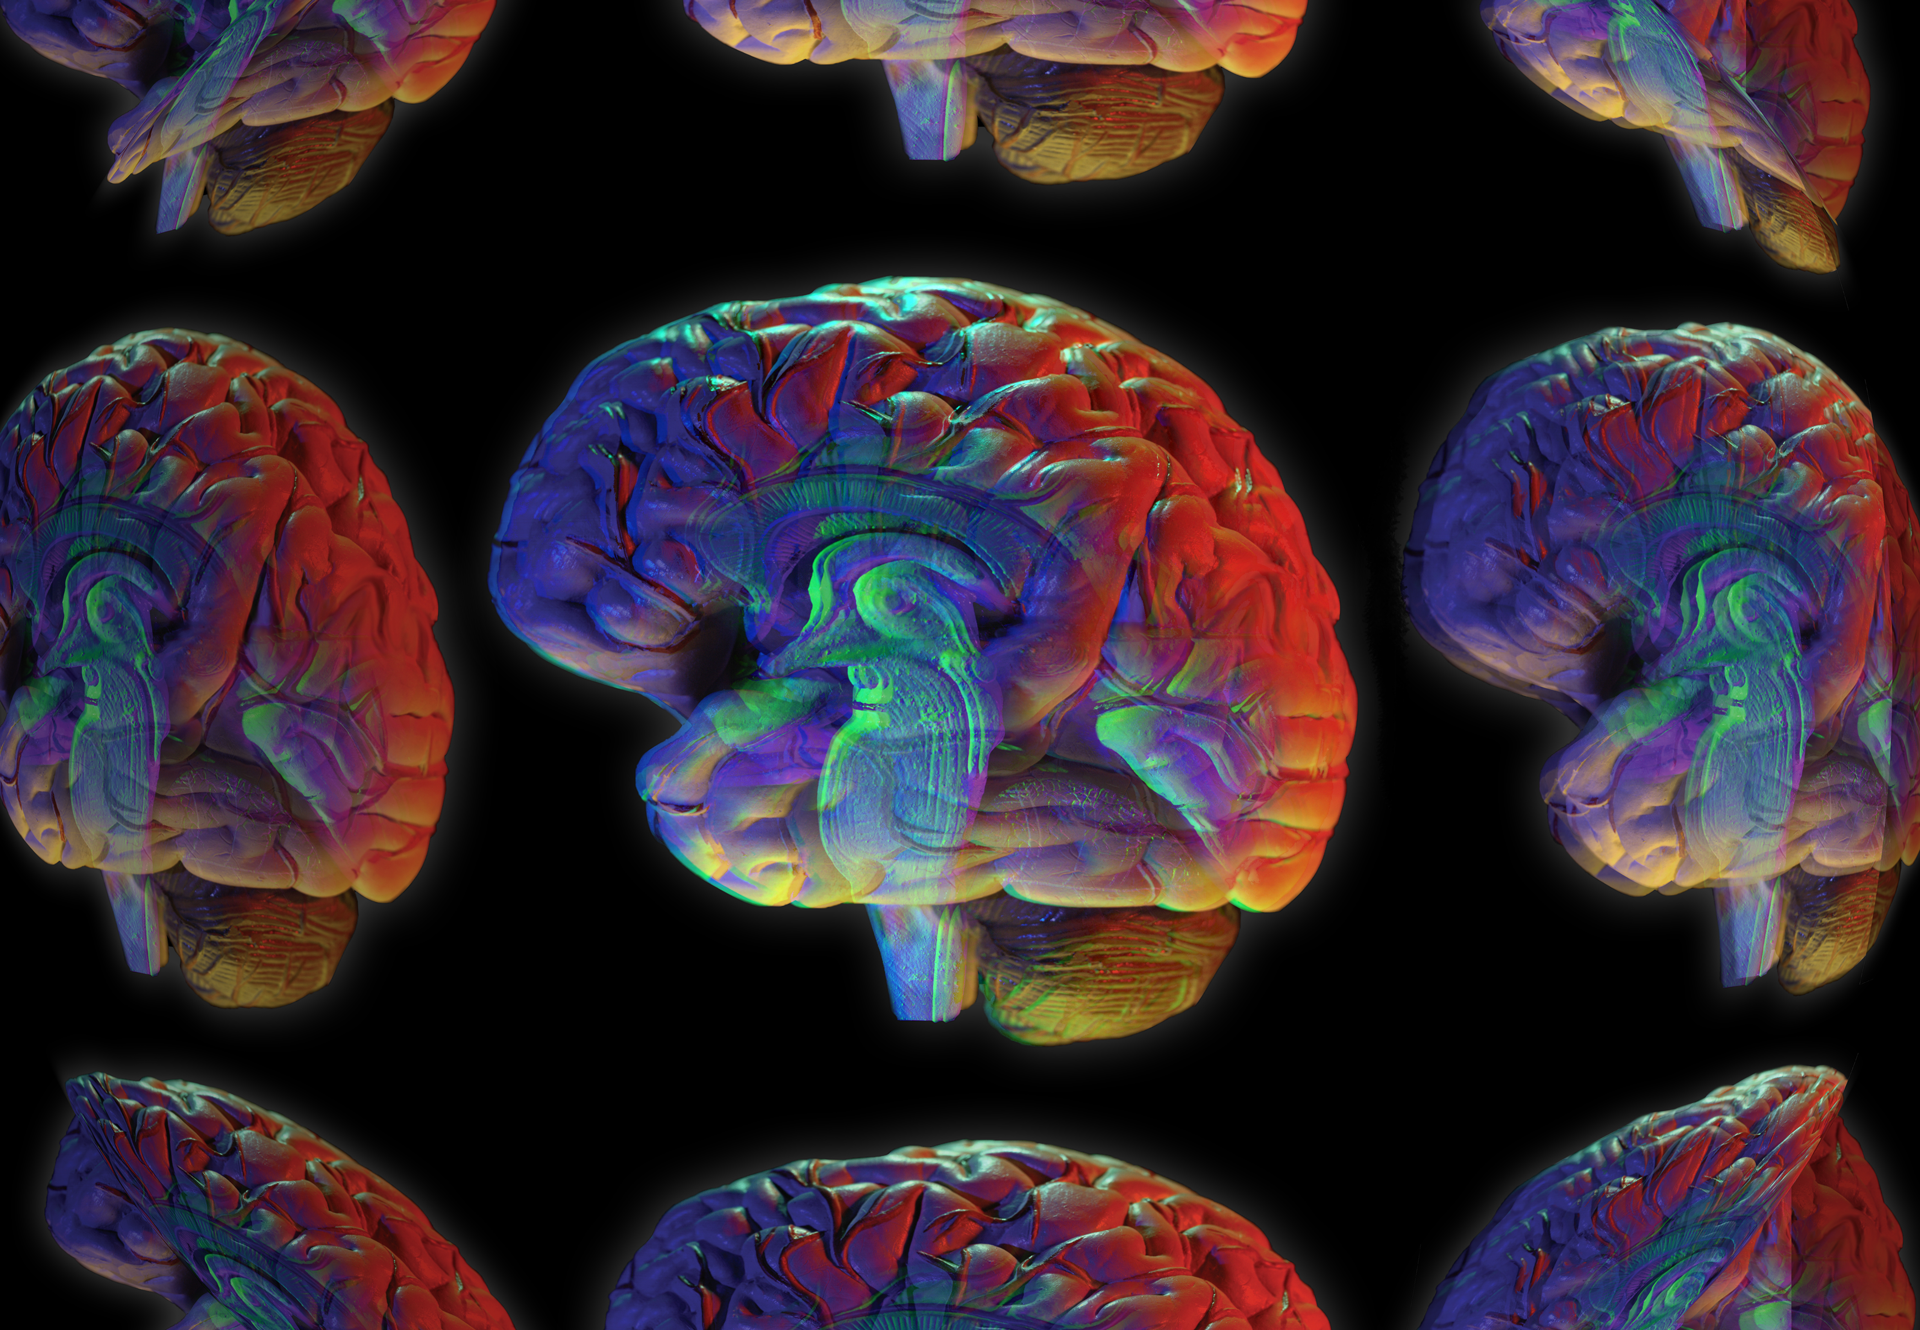 Should coma patients live or die? Machine learning will help decide.